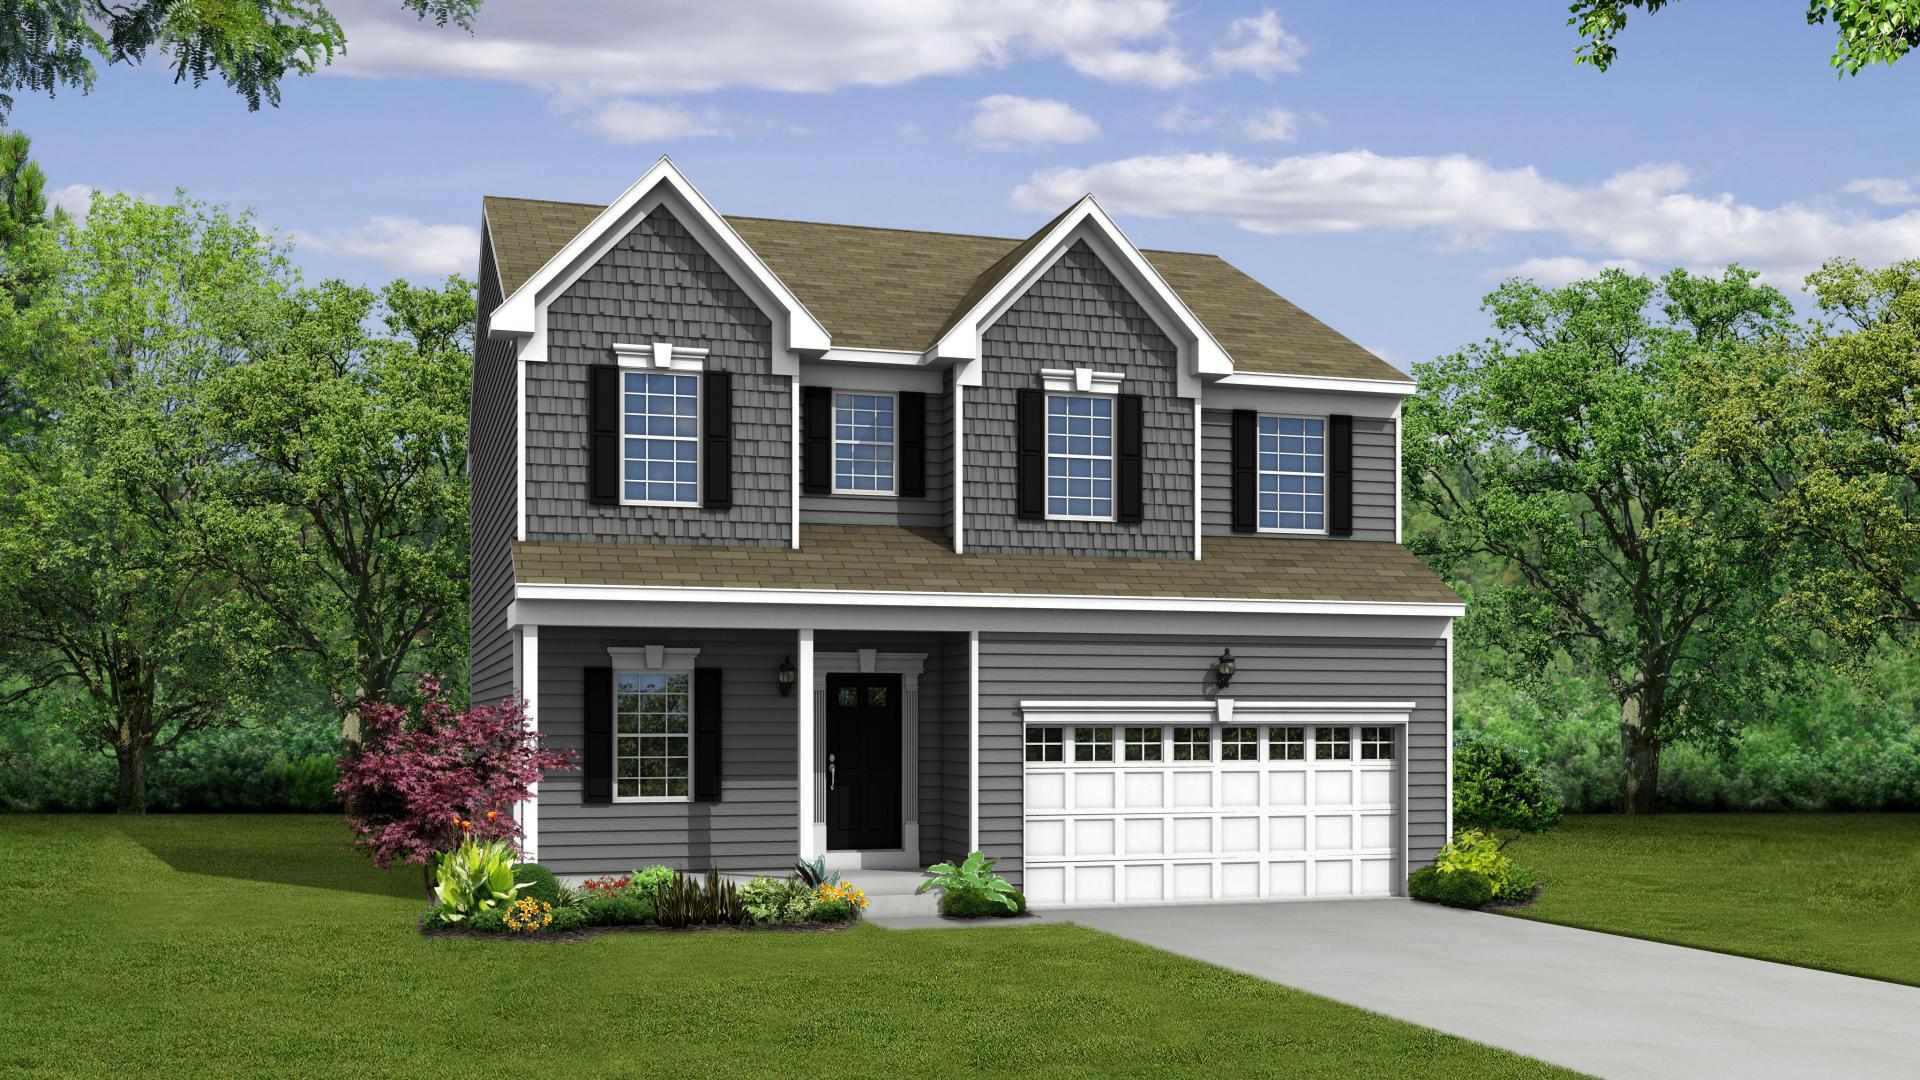 Exterior:Elevation: B Siding Facade with Opt Full Porch and Garage Door